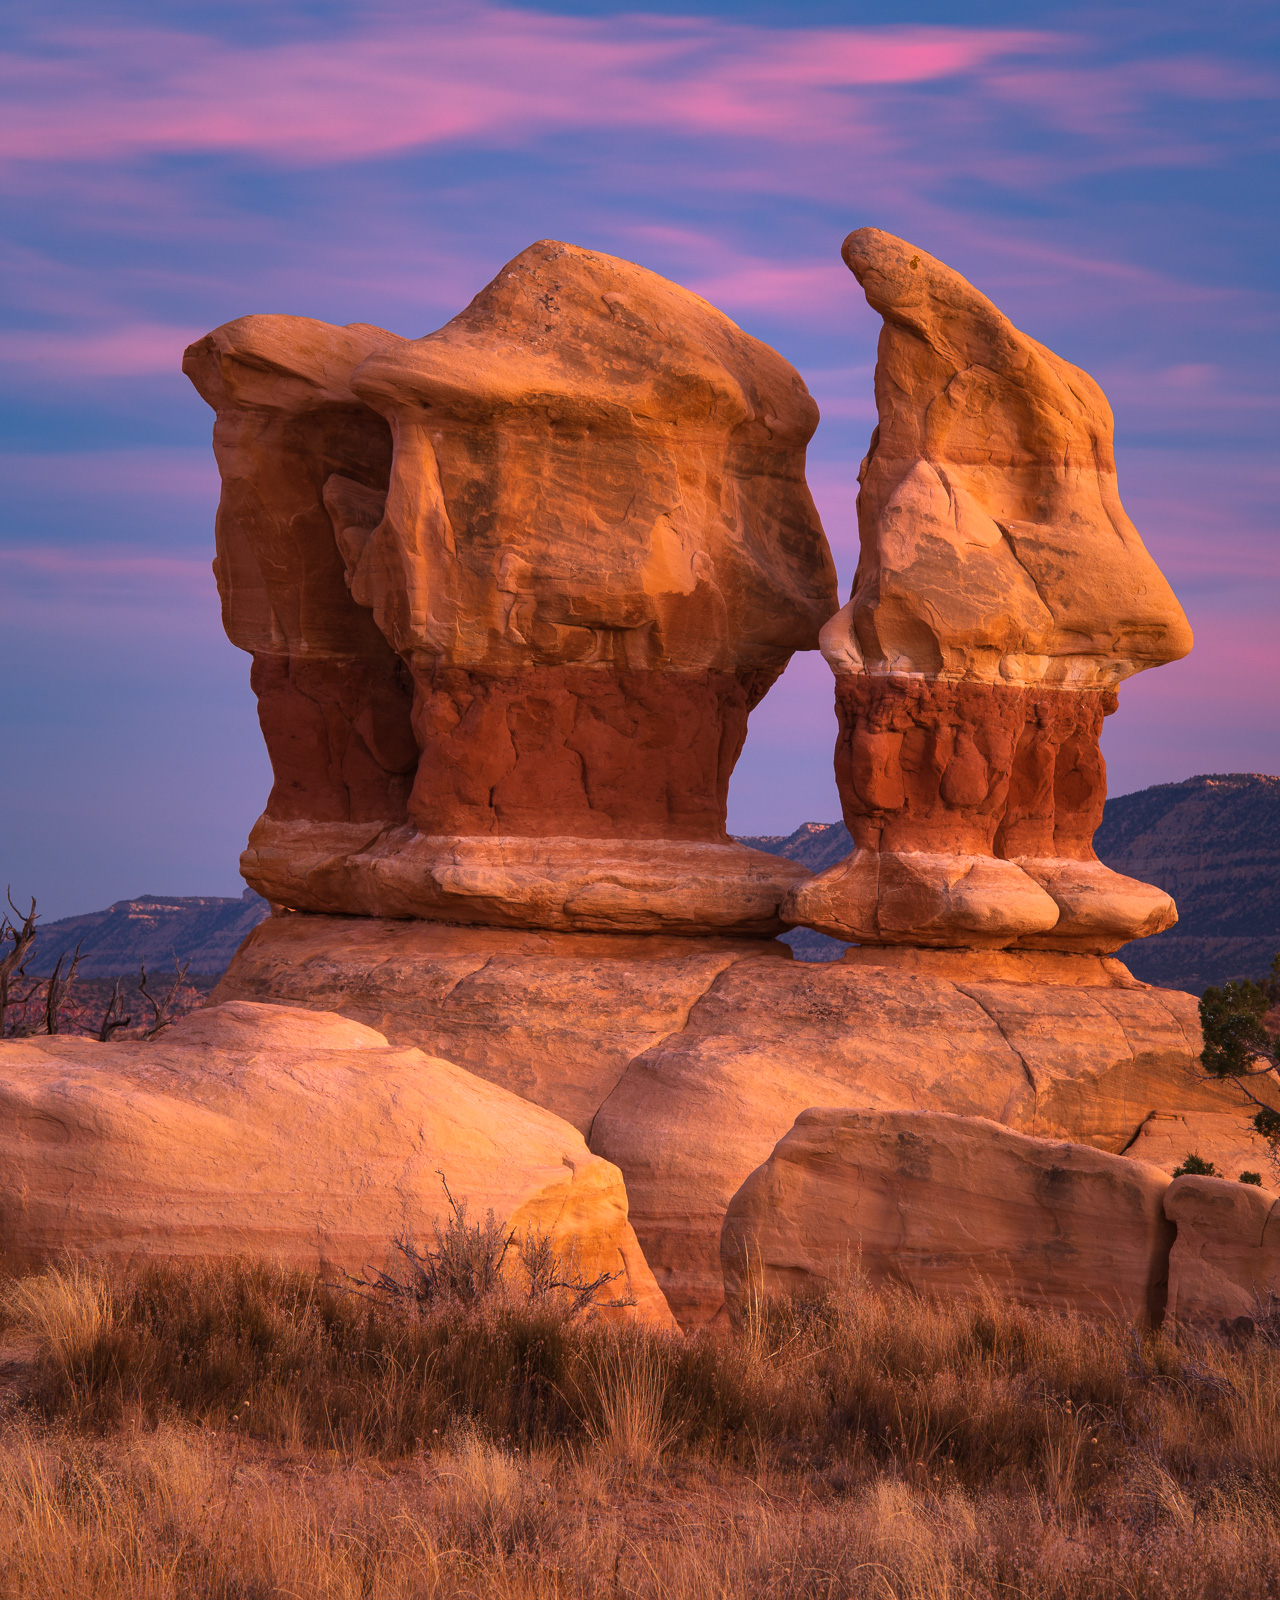 Sandstone formations at sunset in the Devils Garden of the Grand Staircase/Escalante National Monument, Utah.